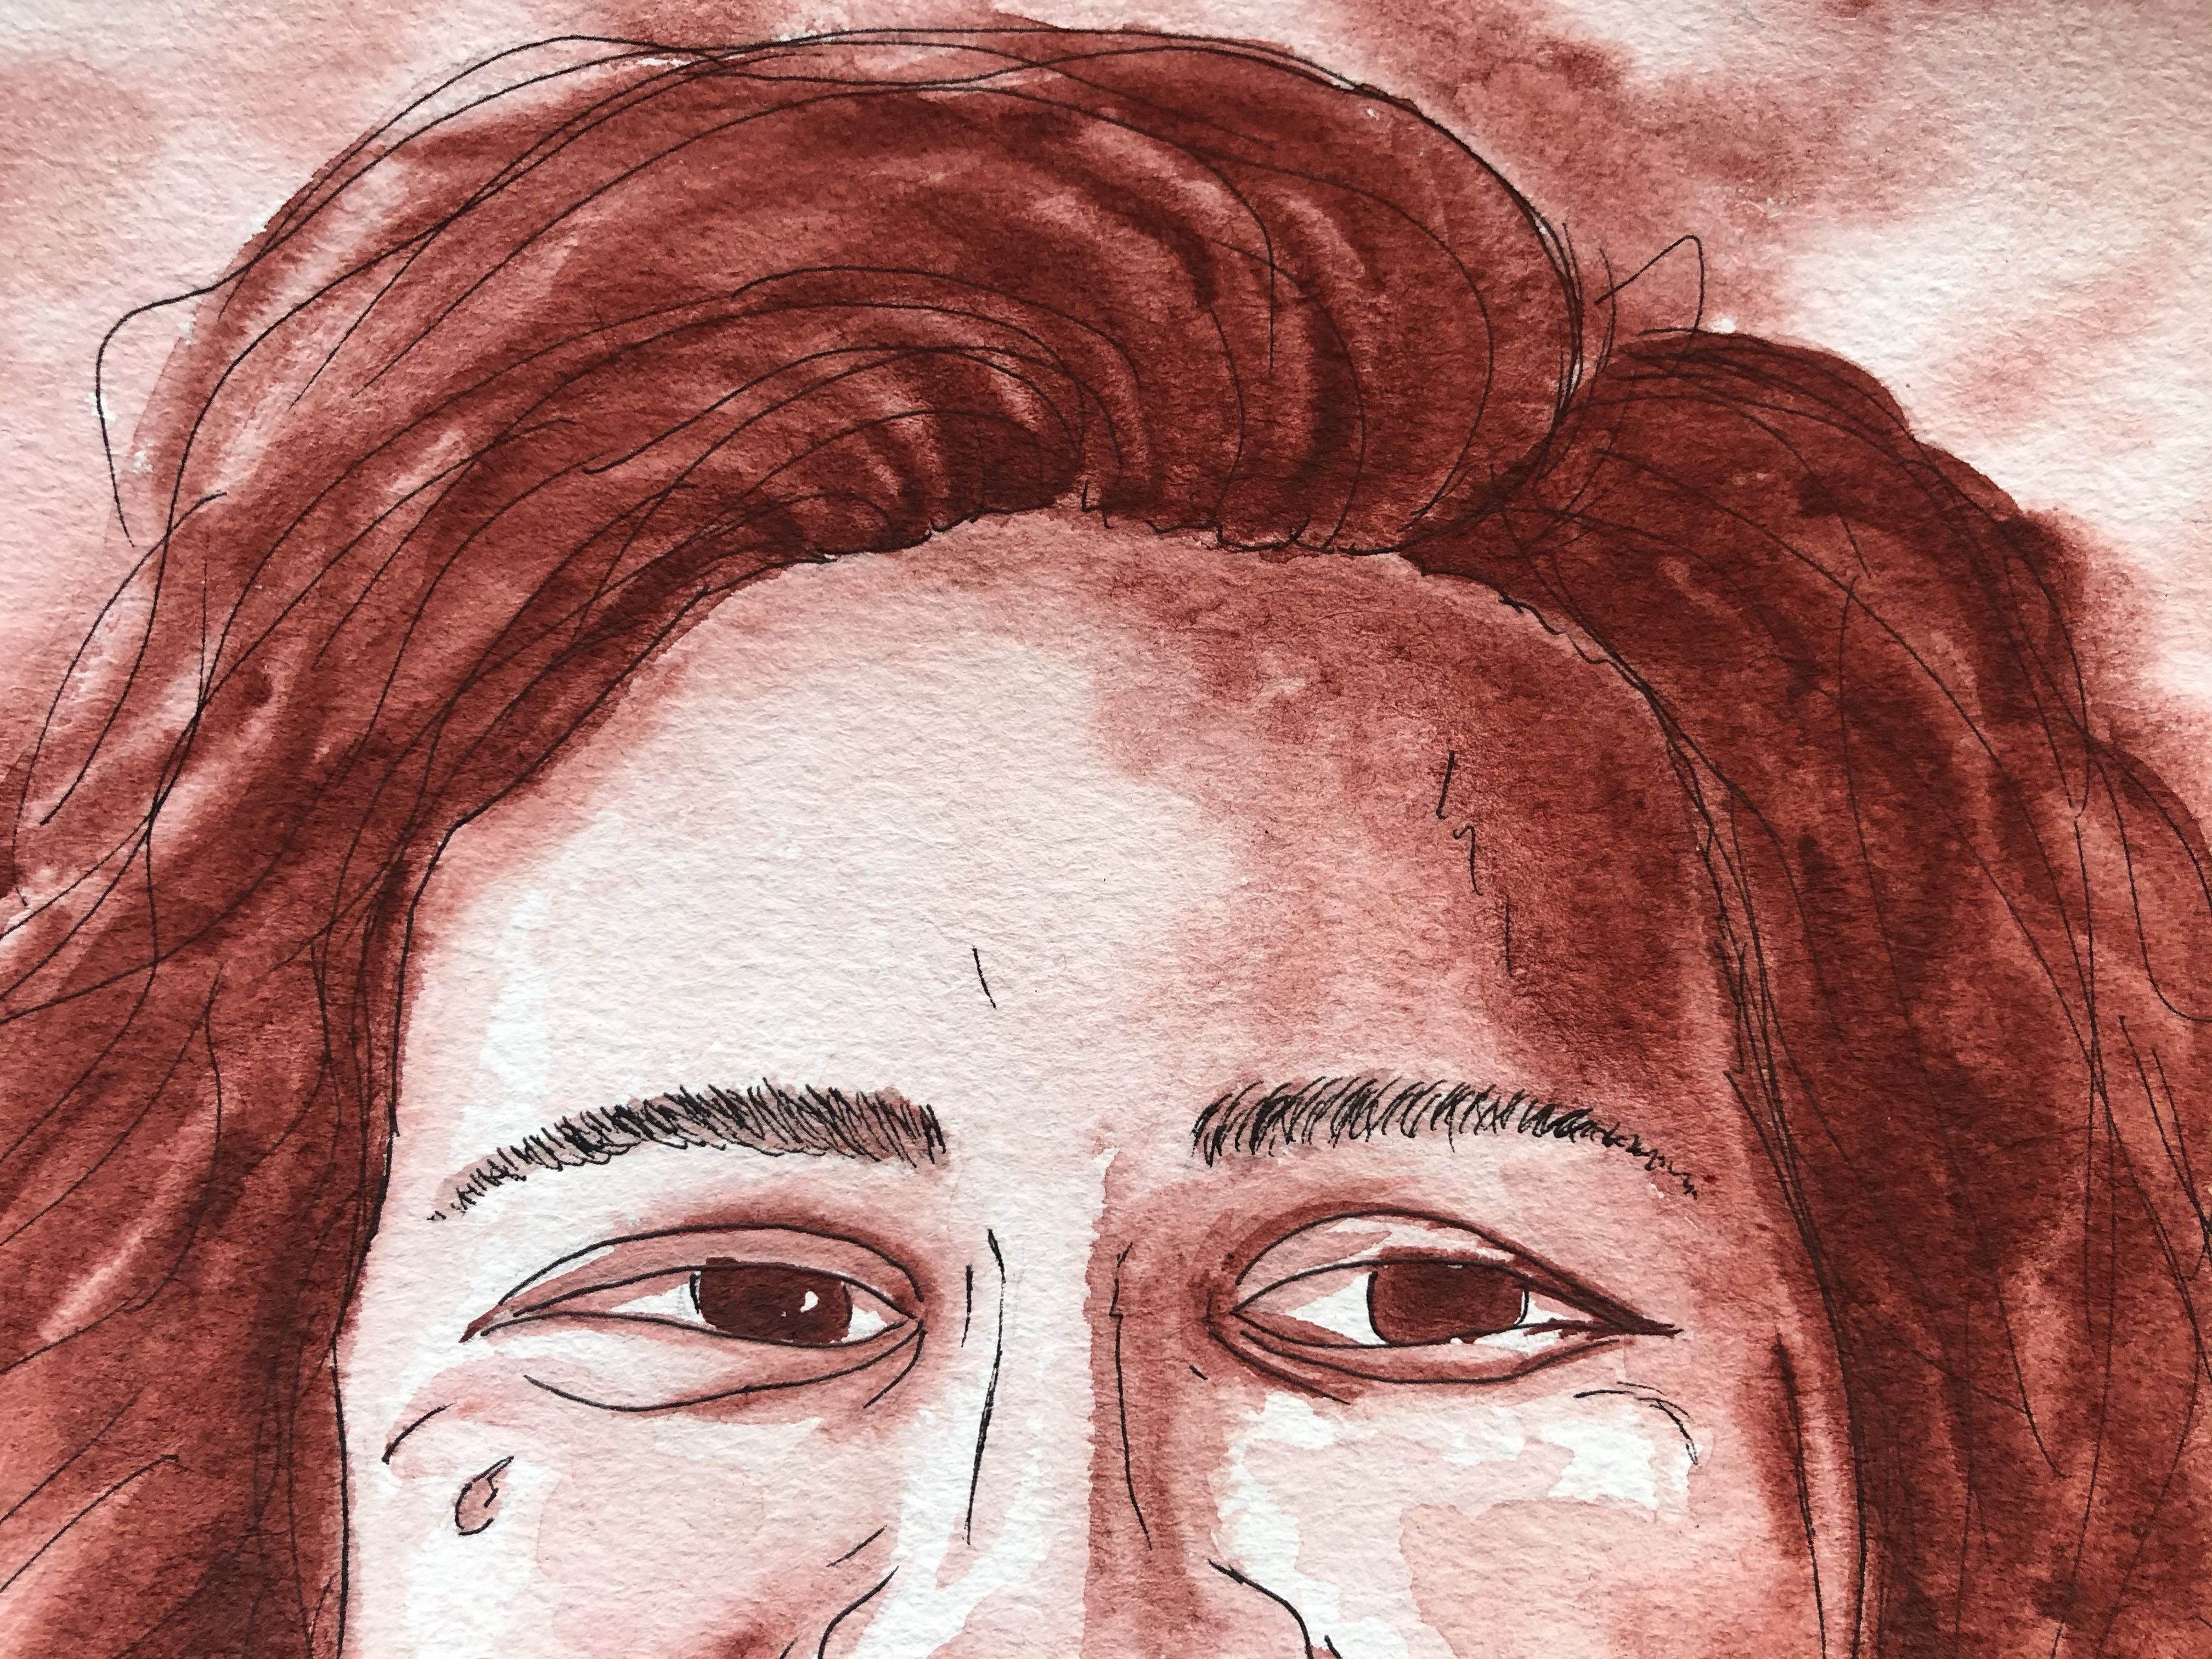 Close-up of eyes on a watercolor portrait of a woman smiling.